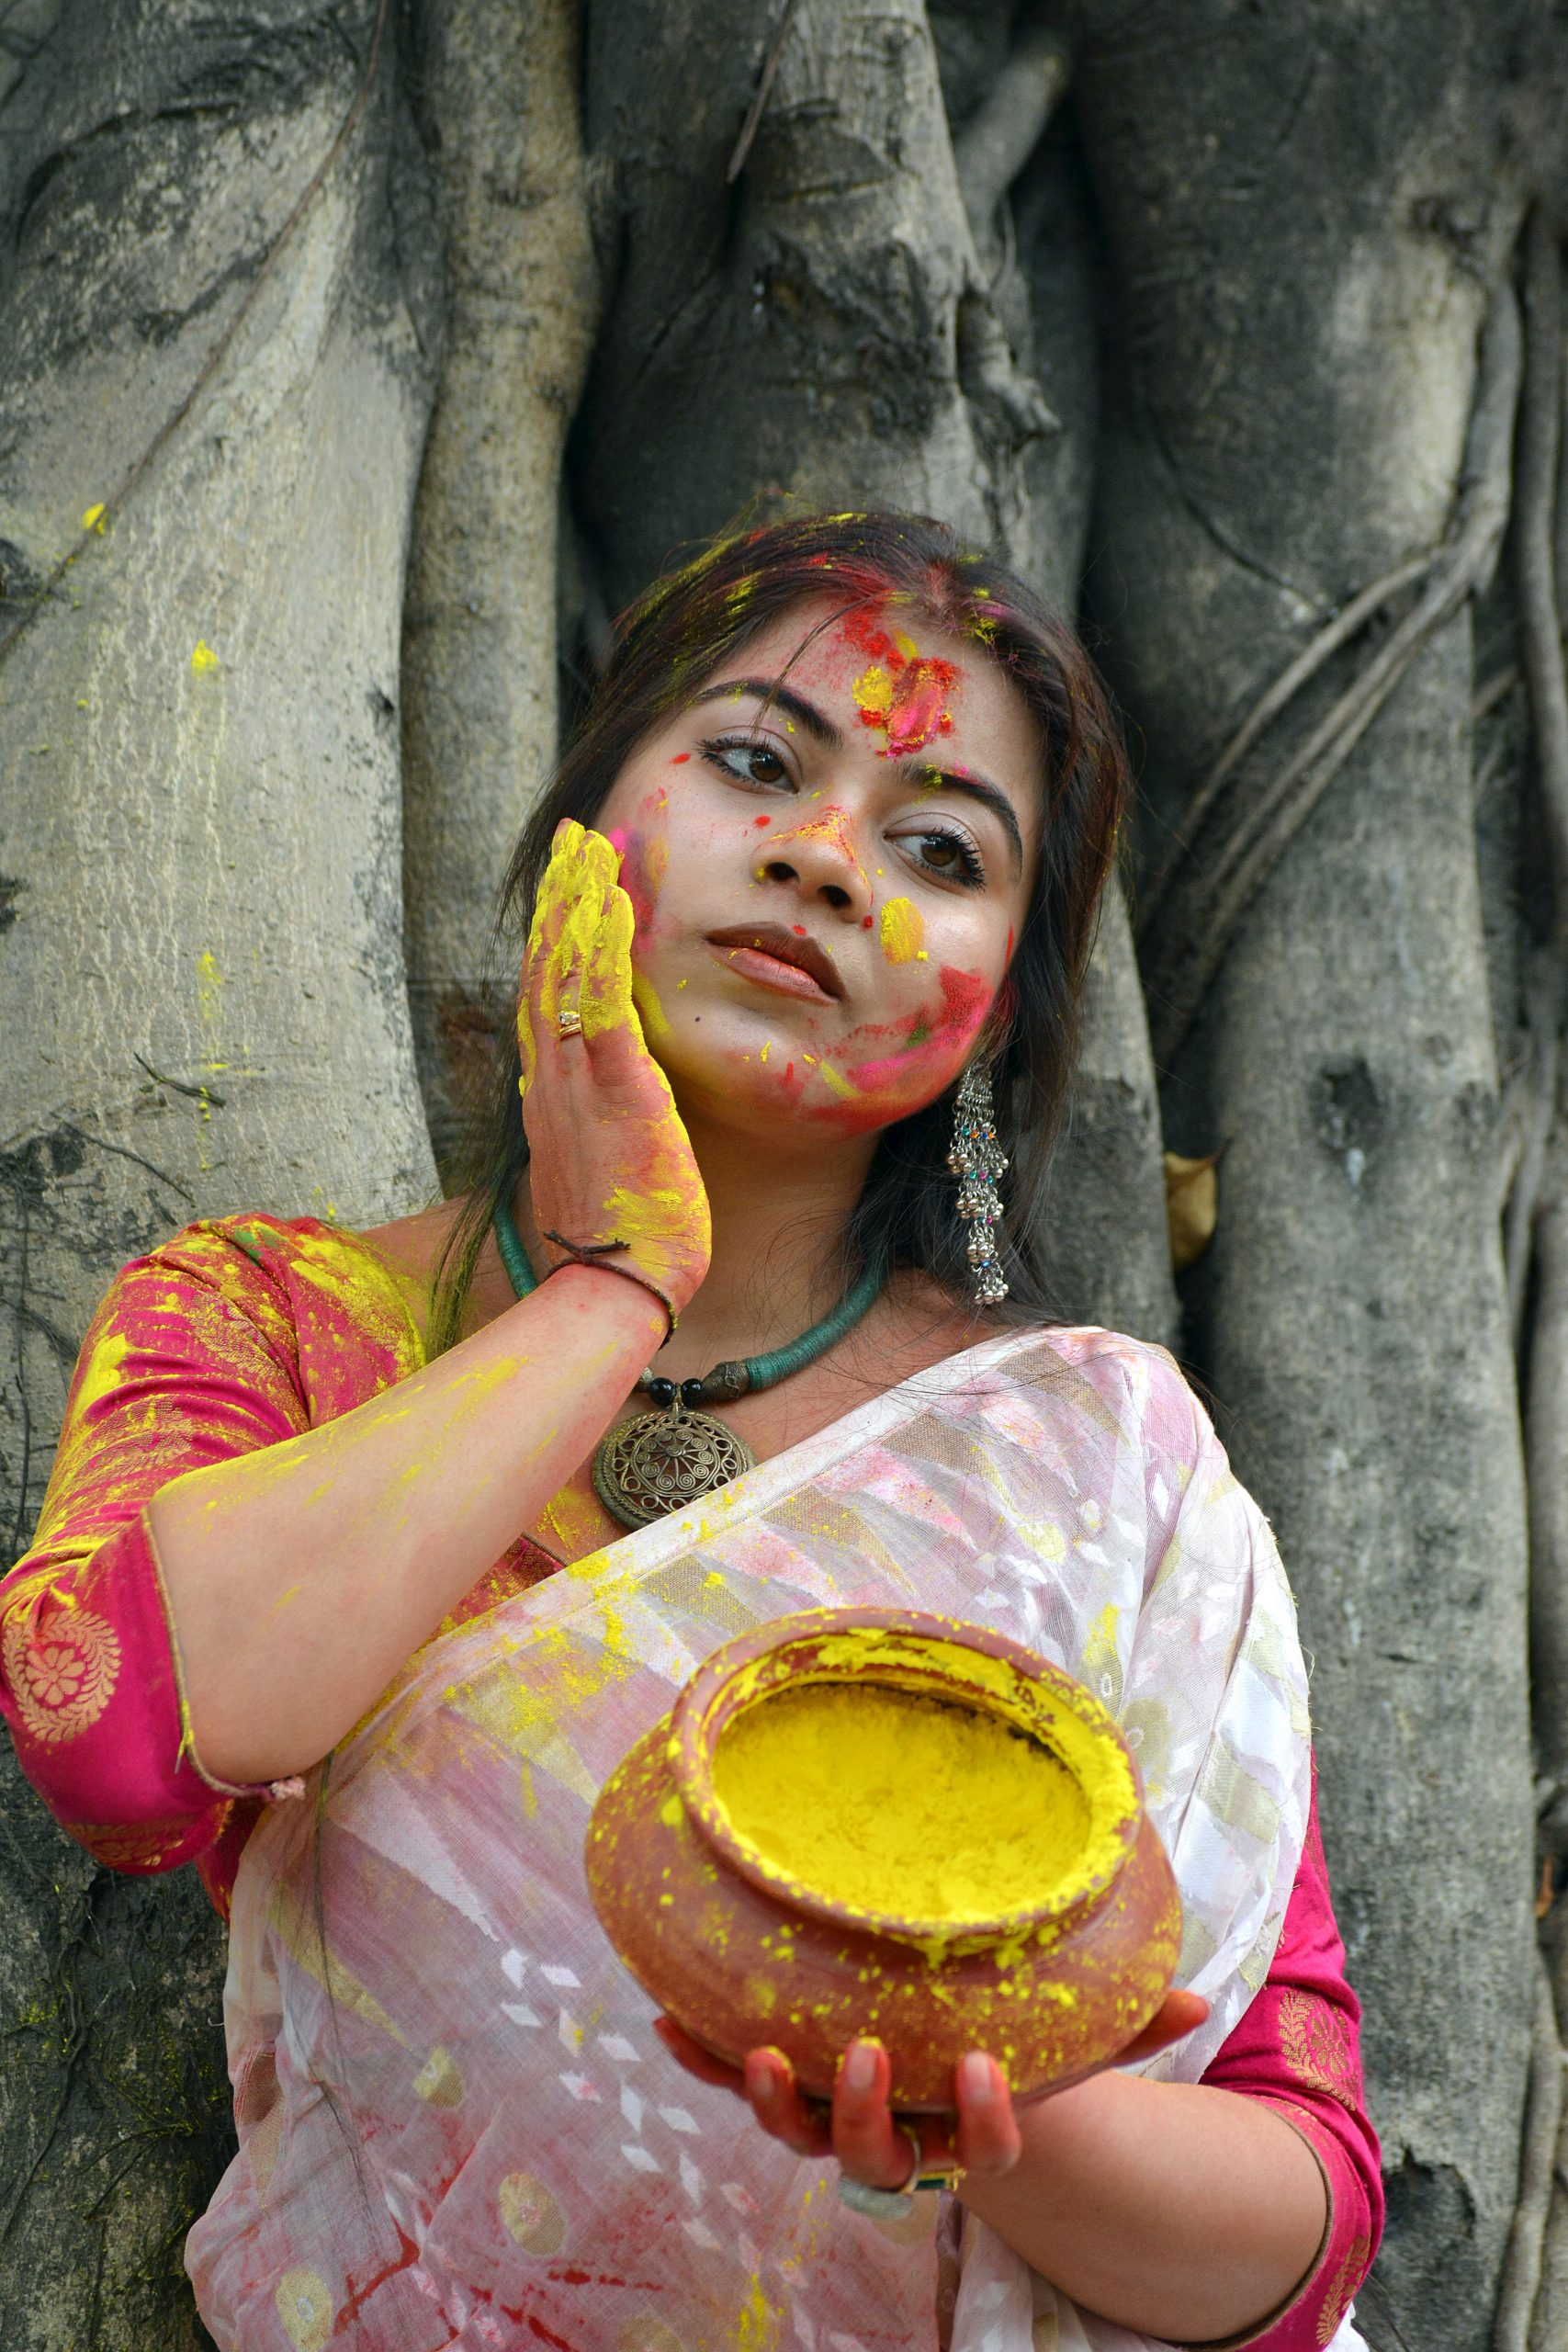 A woman applying Holi colors on her face